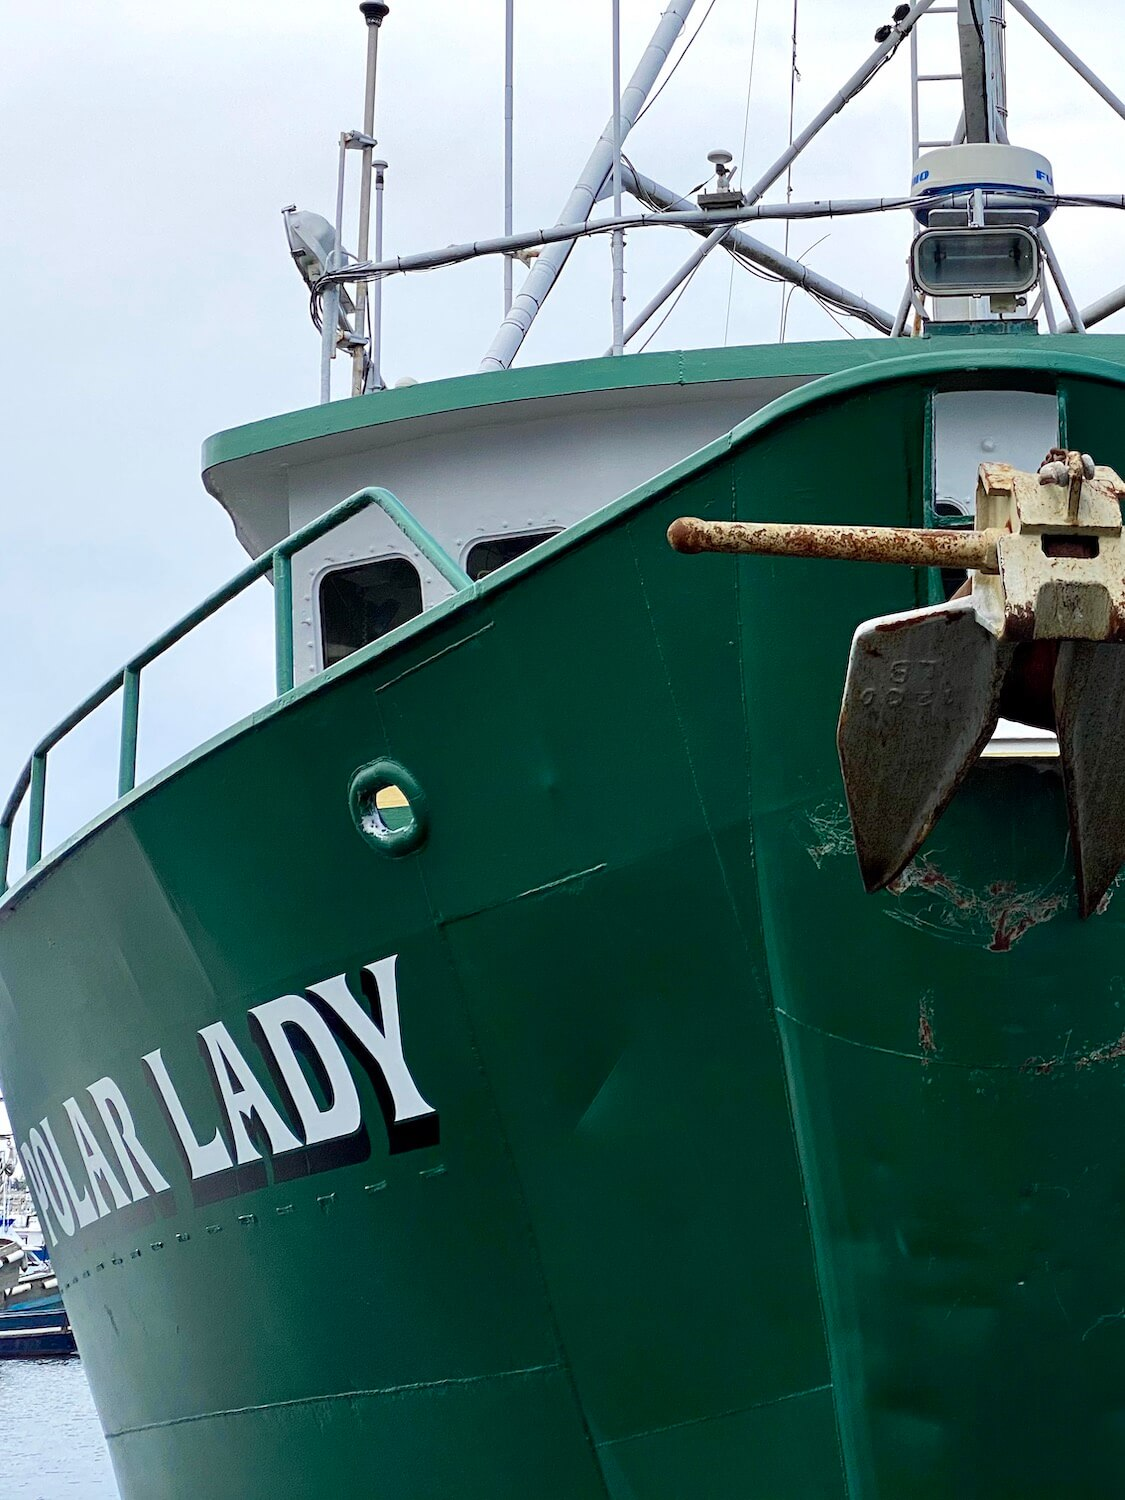 A fishing vessel named Polar Lady sits docked at Fisherman's Terminal in Seattle.  The boat is hunter green with white lettering with black shadow and a giant iron anchor is secured on the font of the vessel.